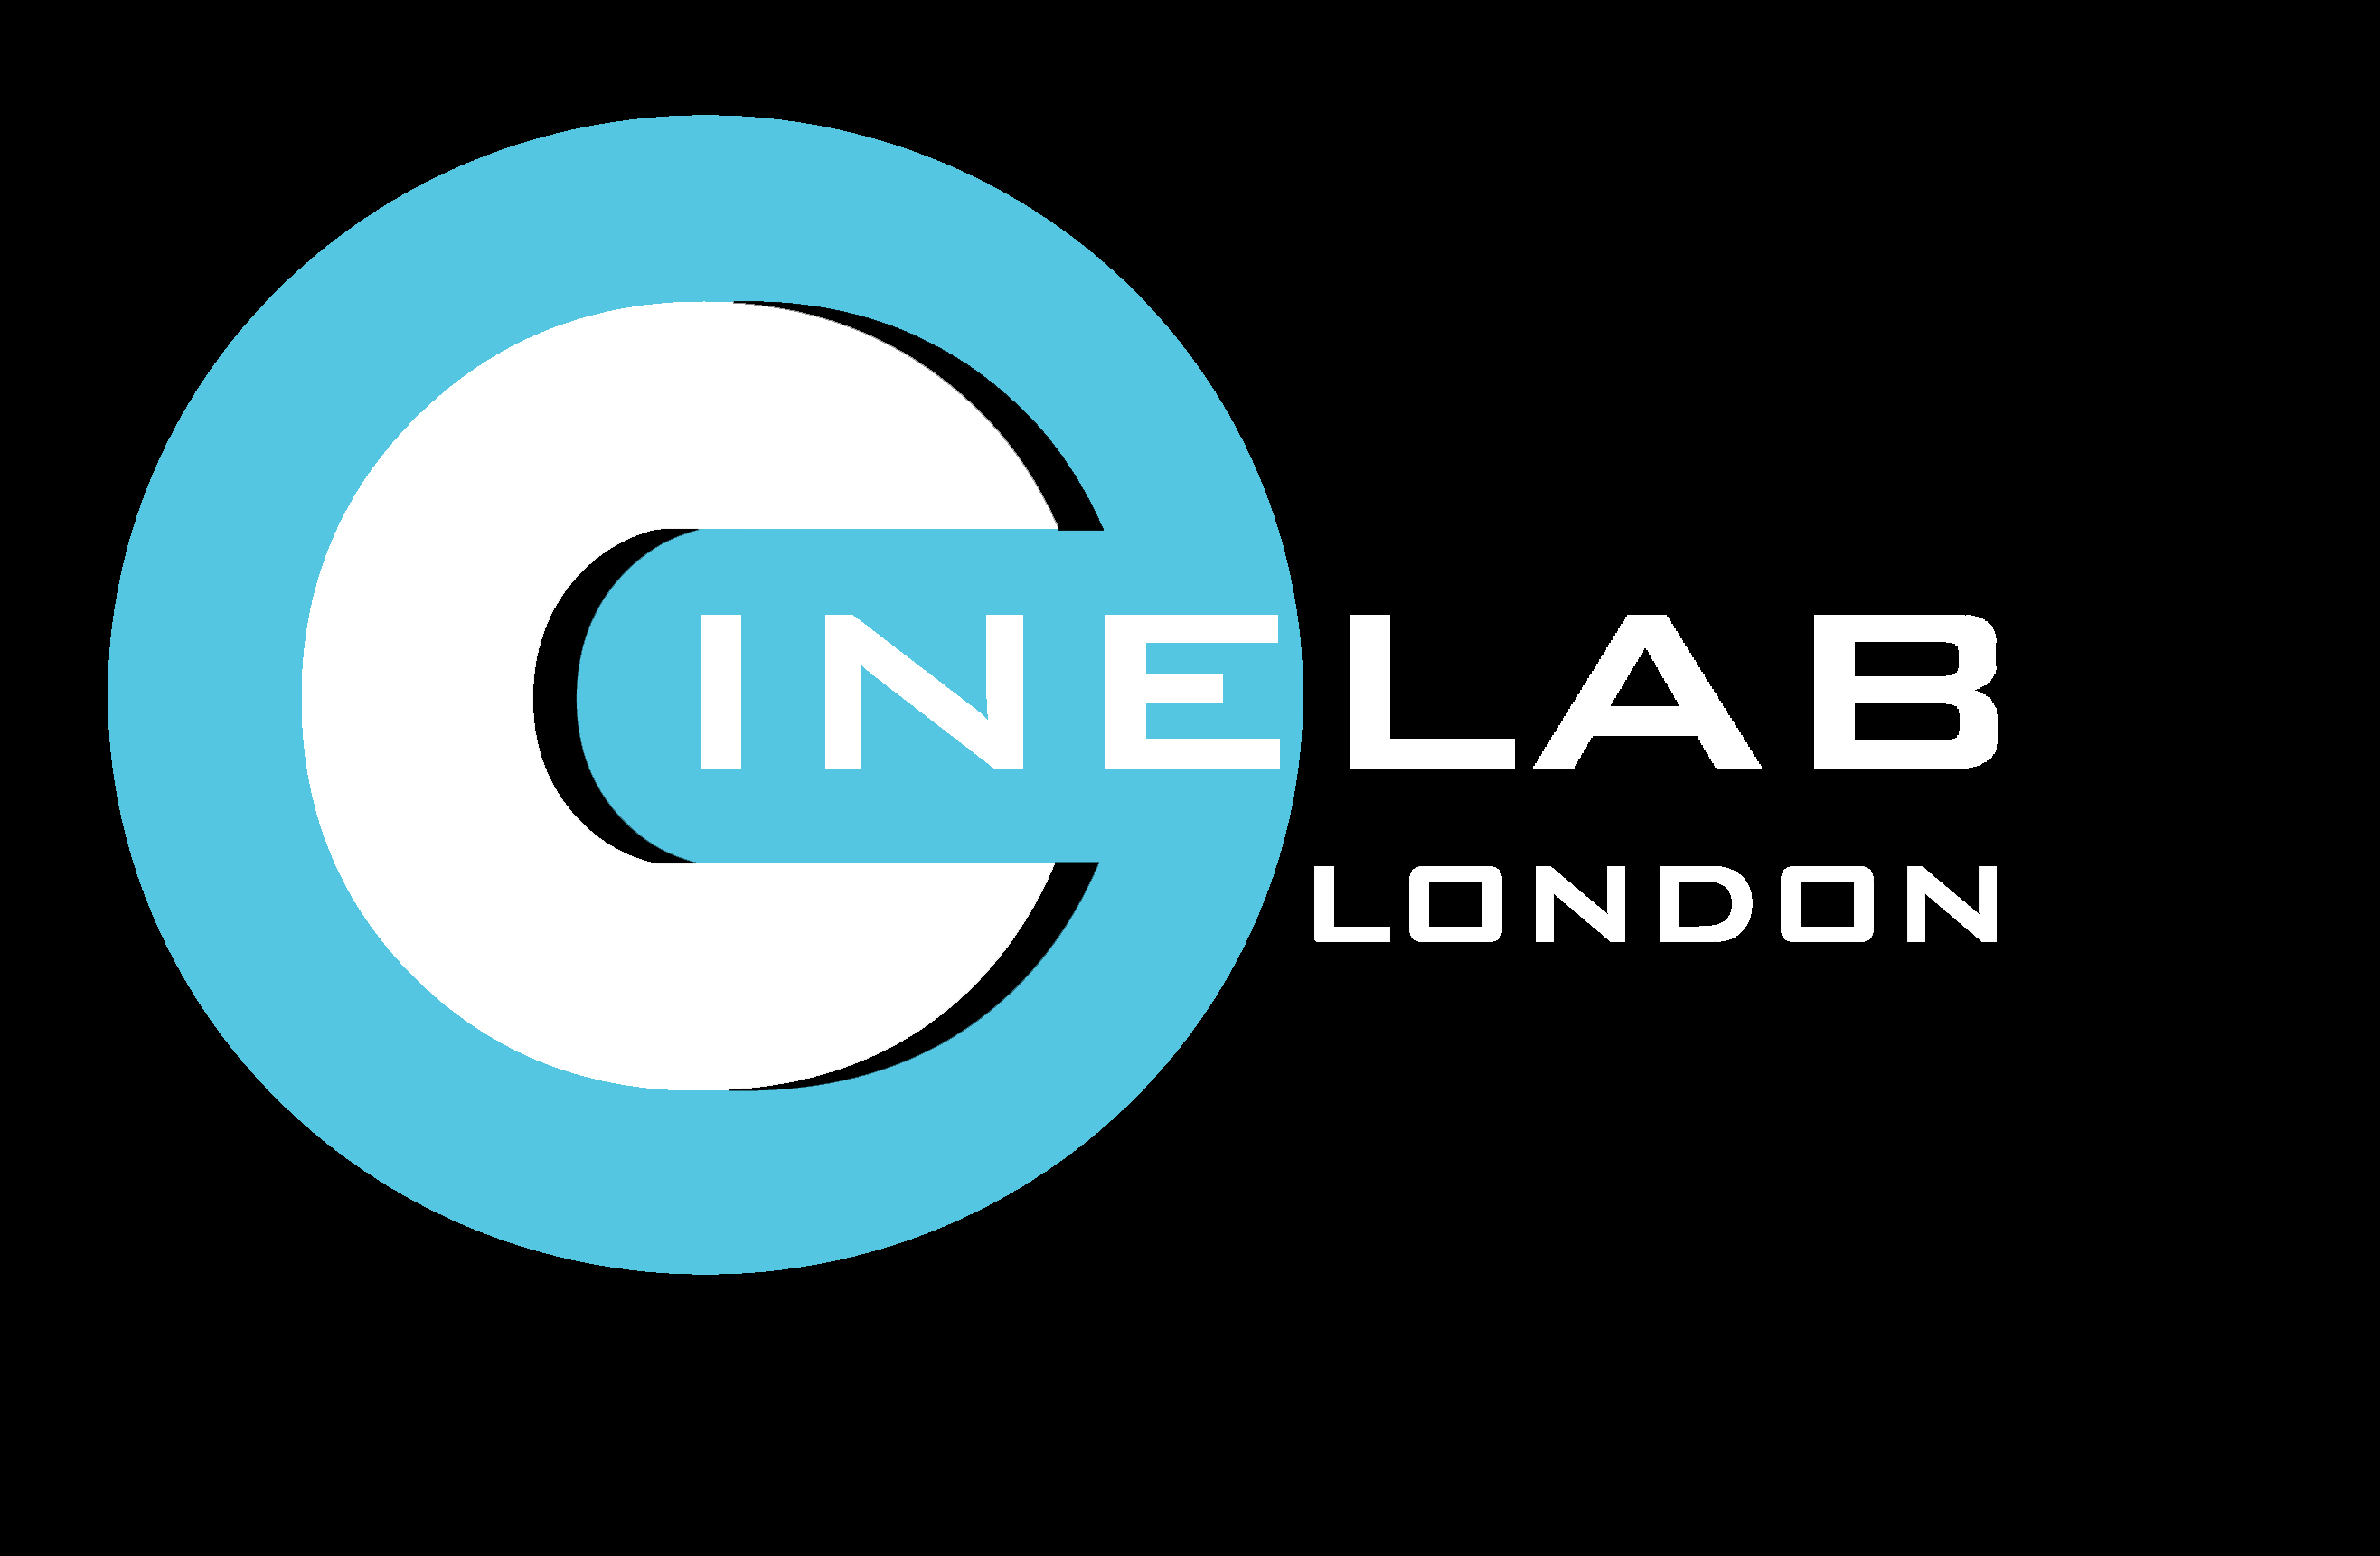 cinelab_london_black JPEG